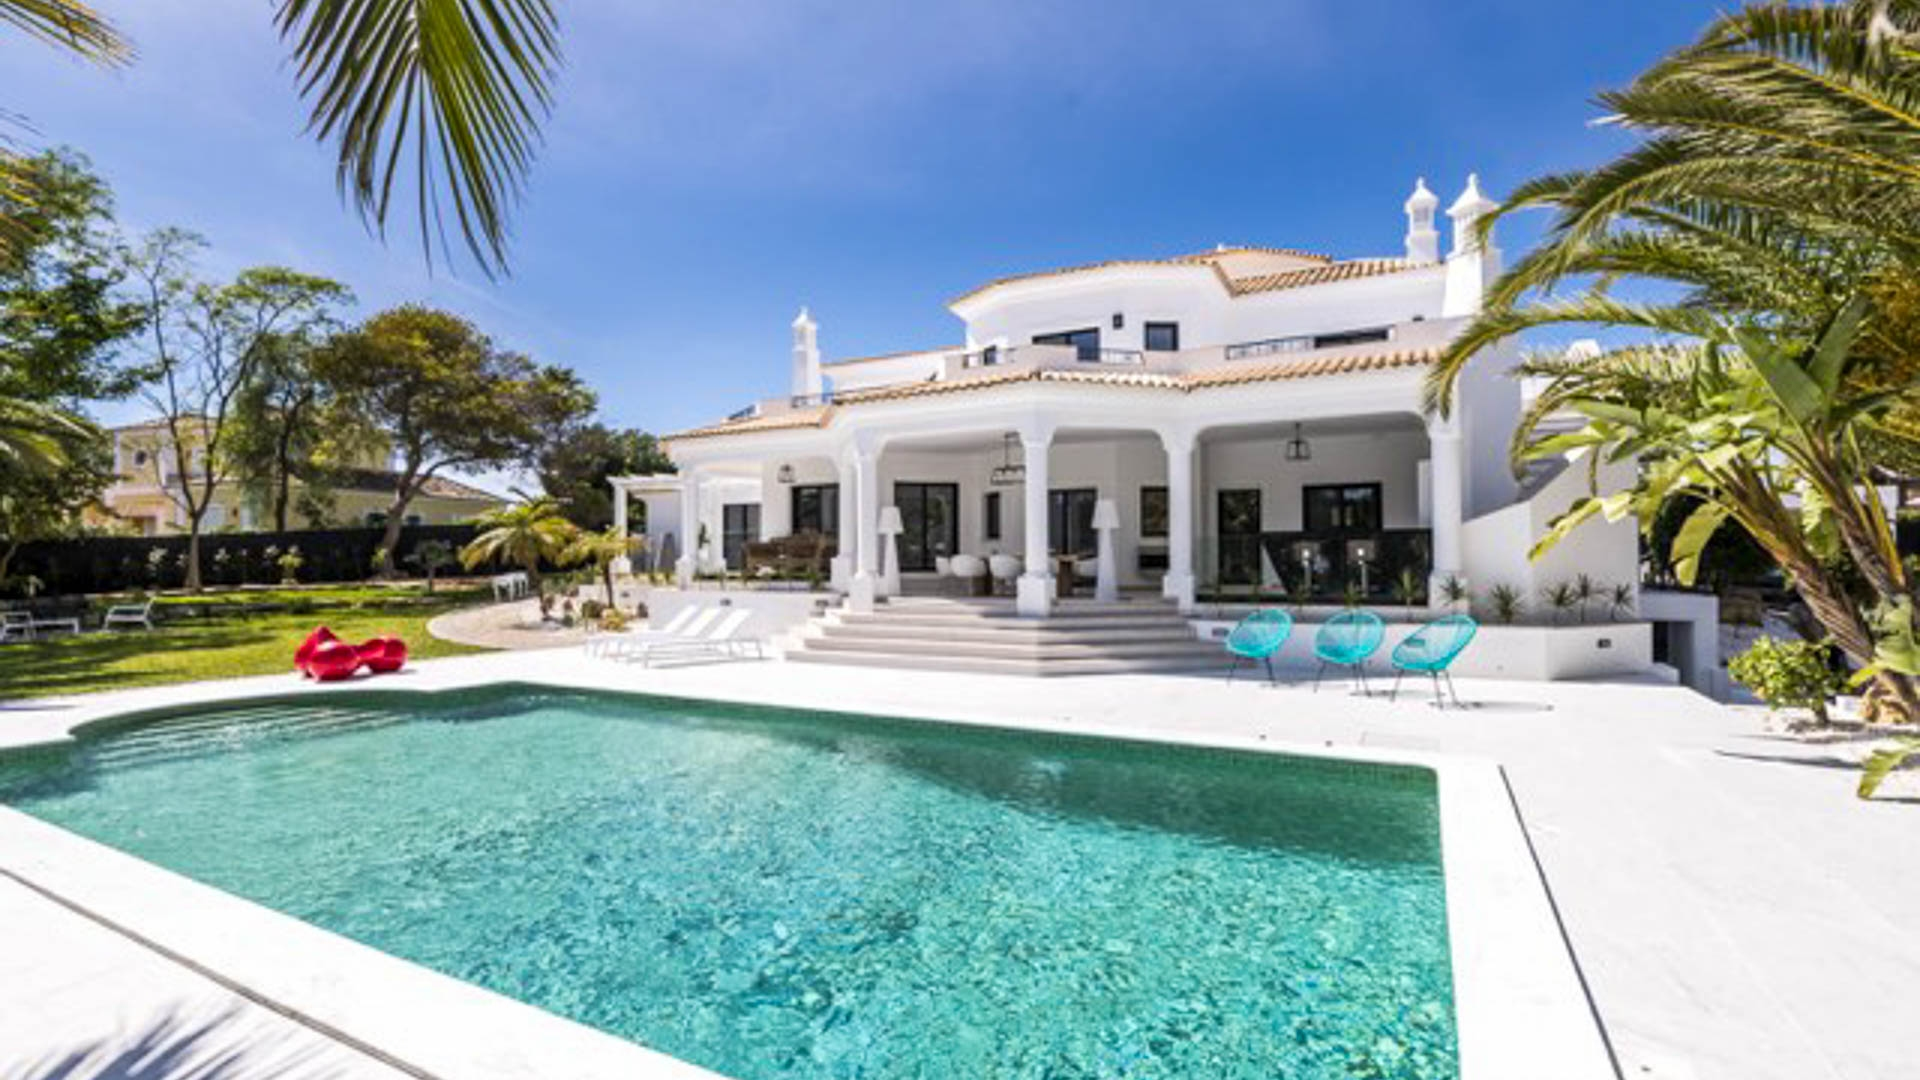 Immaculate 4 Bedroom Villa Newly Renovated on Vila Sol Golf | VM1760 This modern villa has just undergone total renovations with new kitchen, windows, pool and fixtures. Walking distance to golf and restaurants makes this an ideal rental investment for holiday lets